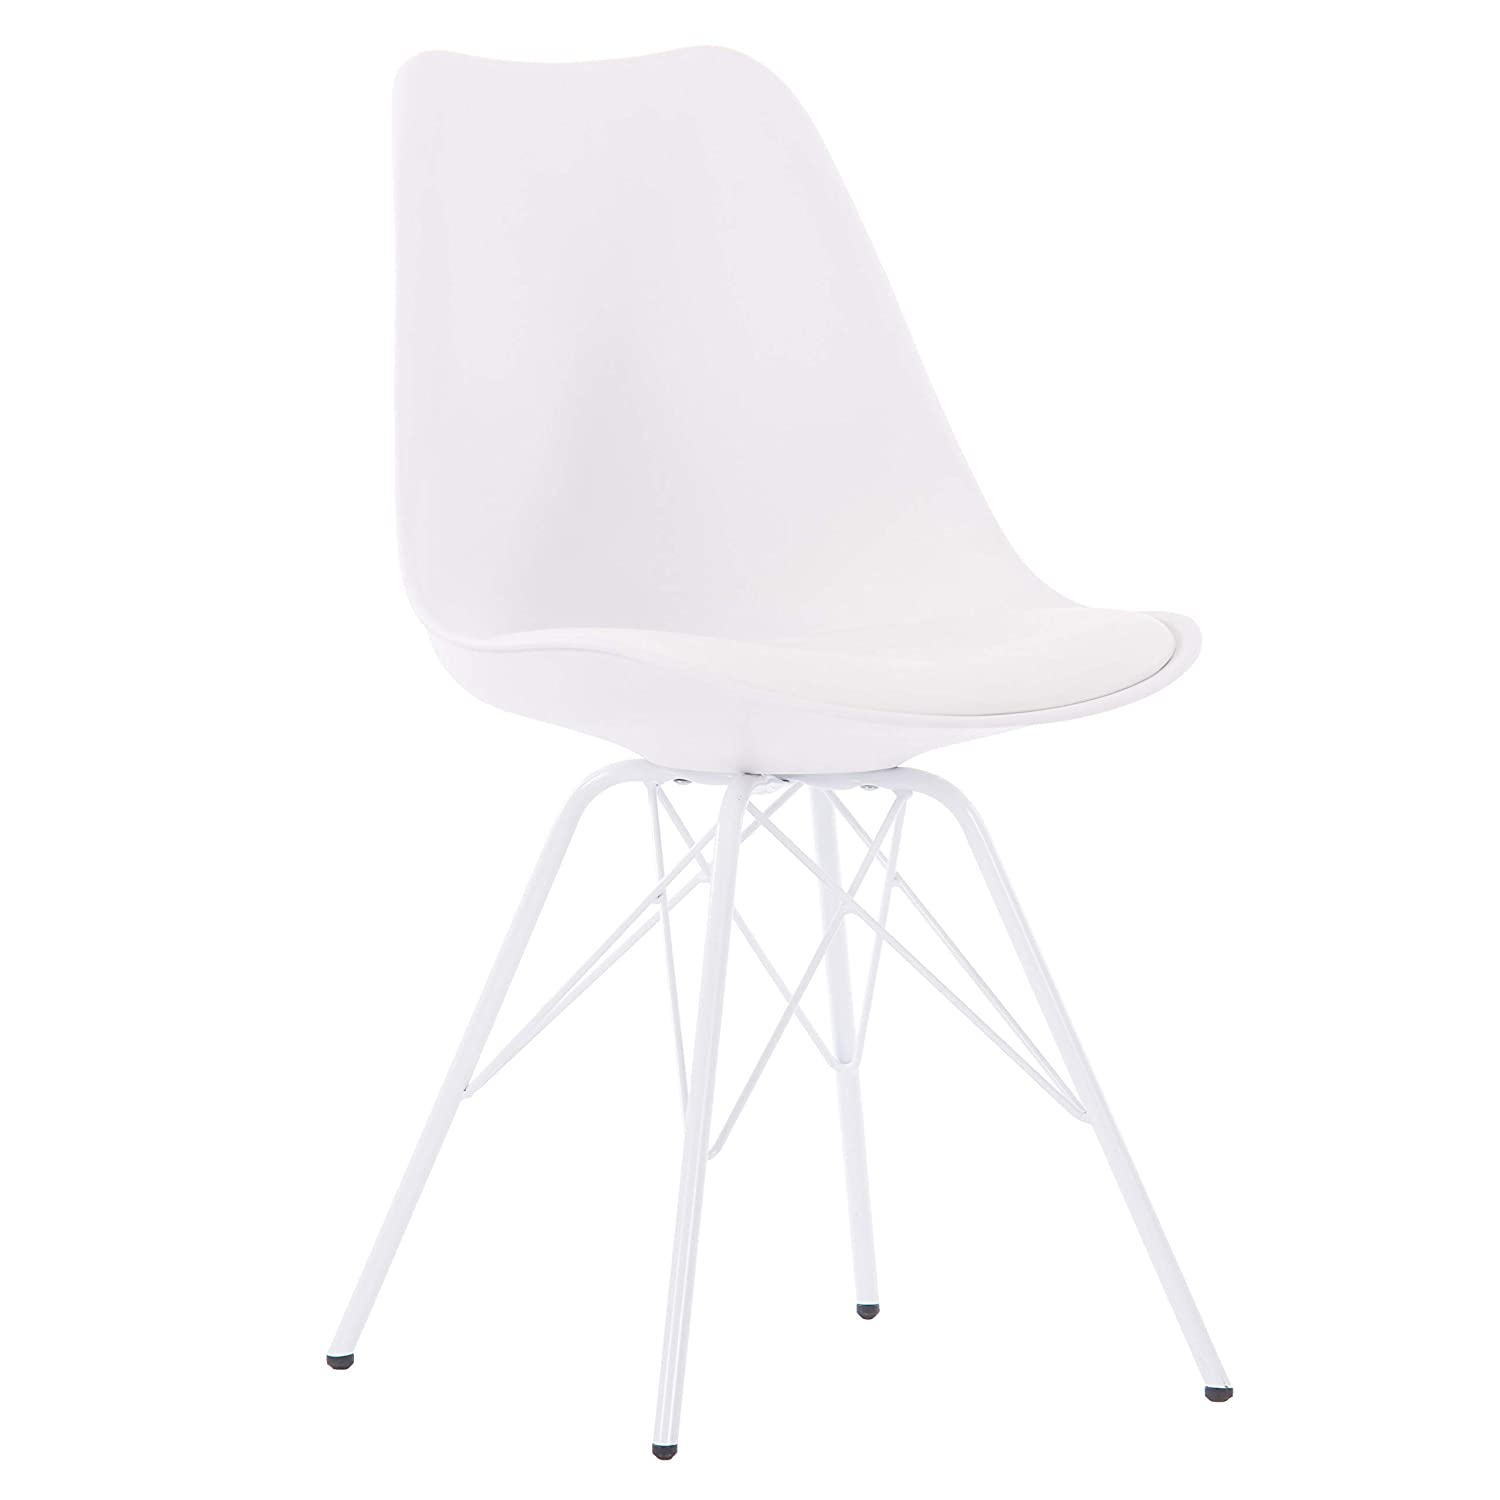 Porthos Home Midcentury Modern Eames Style DSR Dining Room Chair with Unique White Wire Metal Base, Easy Assembly, Single